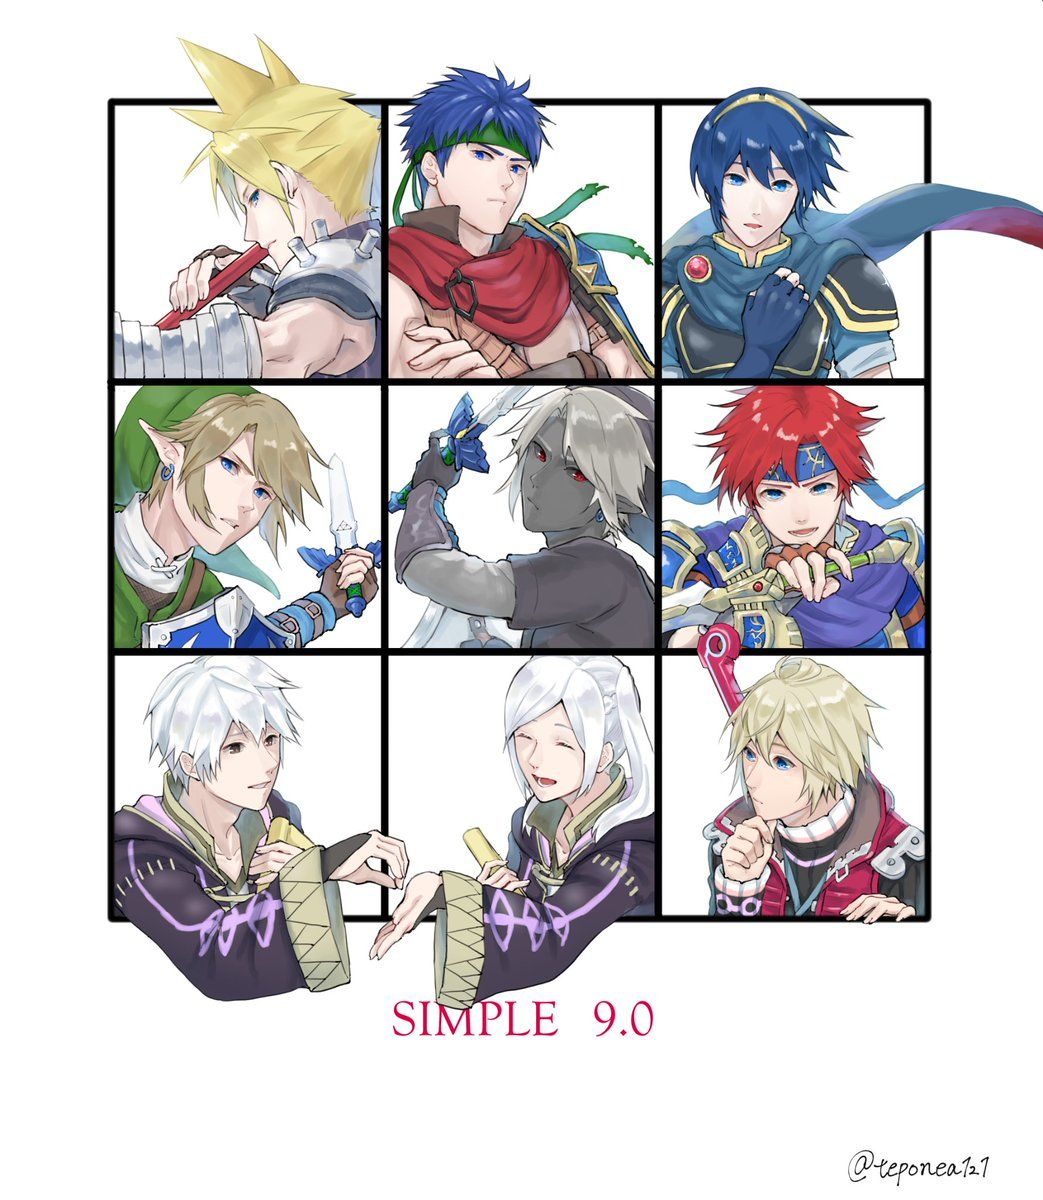 Link, Ike, Dark Link, Shulk, Cloud, Roy, Robin, (Female